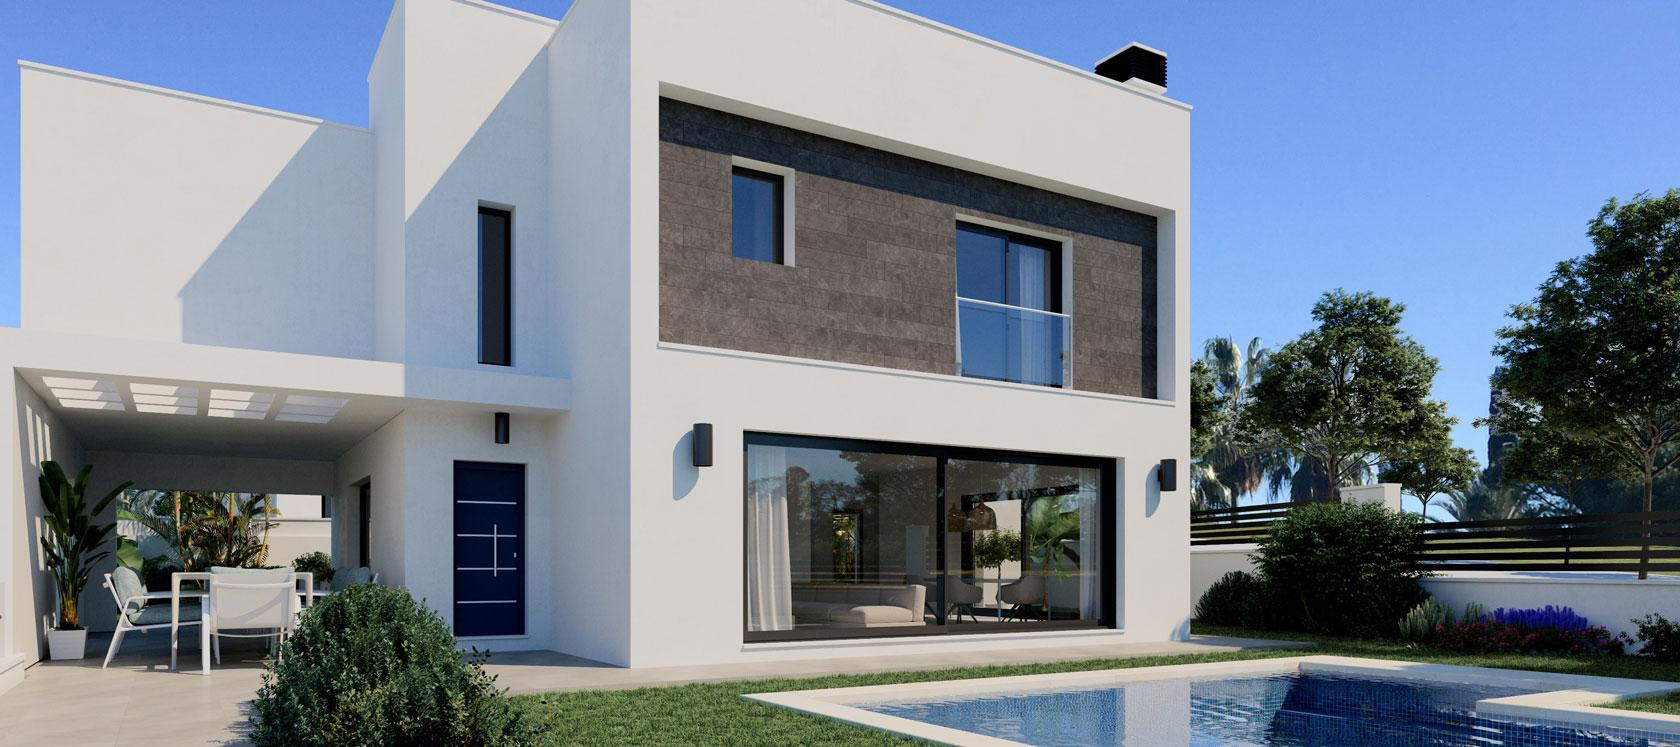 New-build flats in Malaga| Célere Retamar II Development